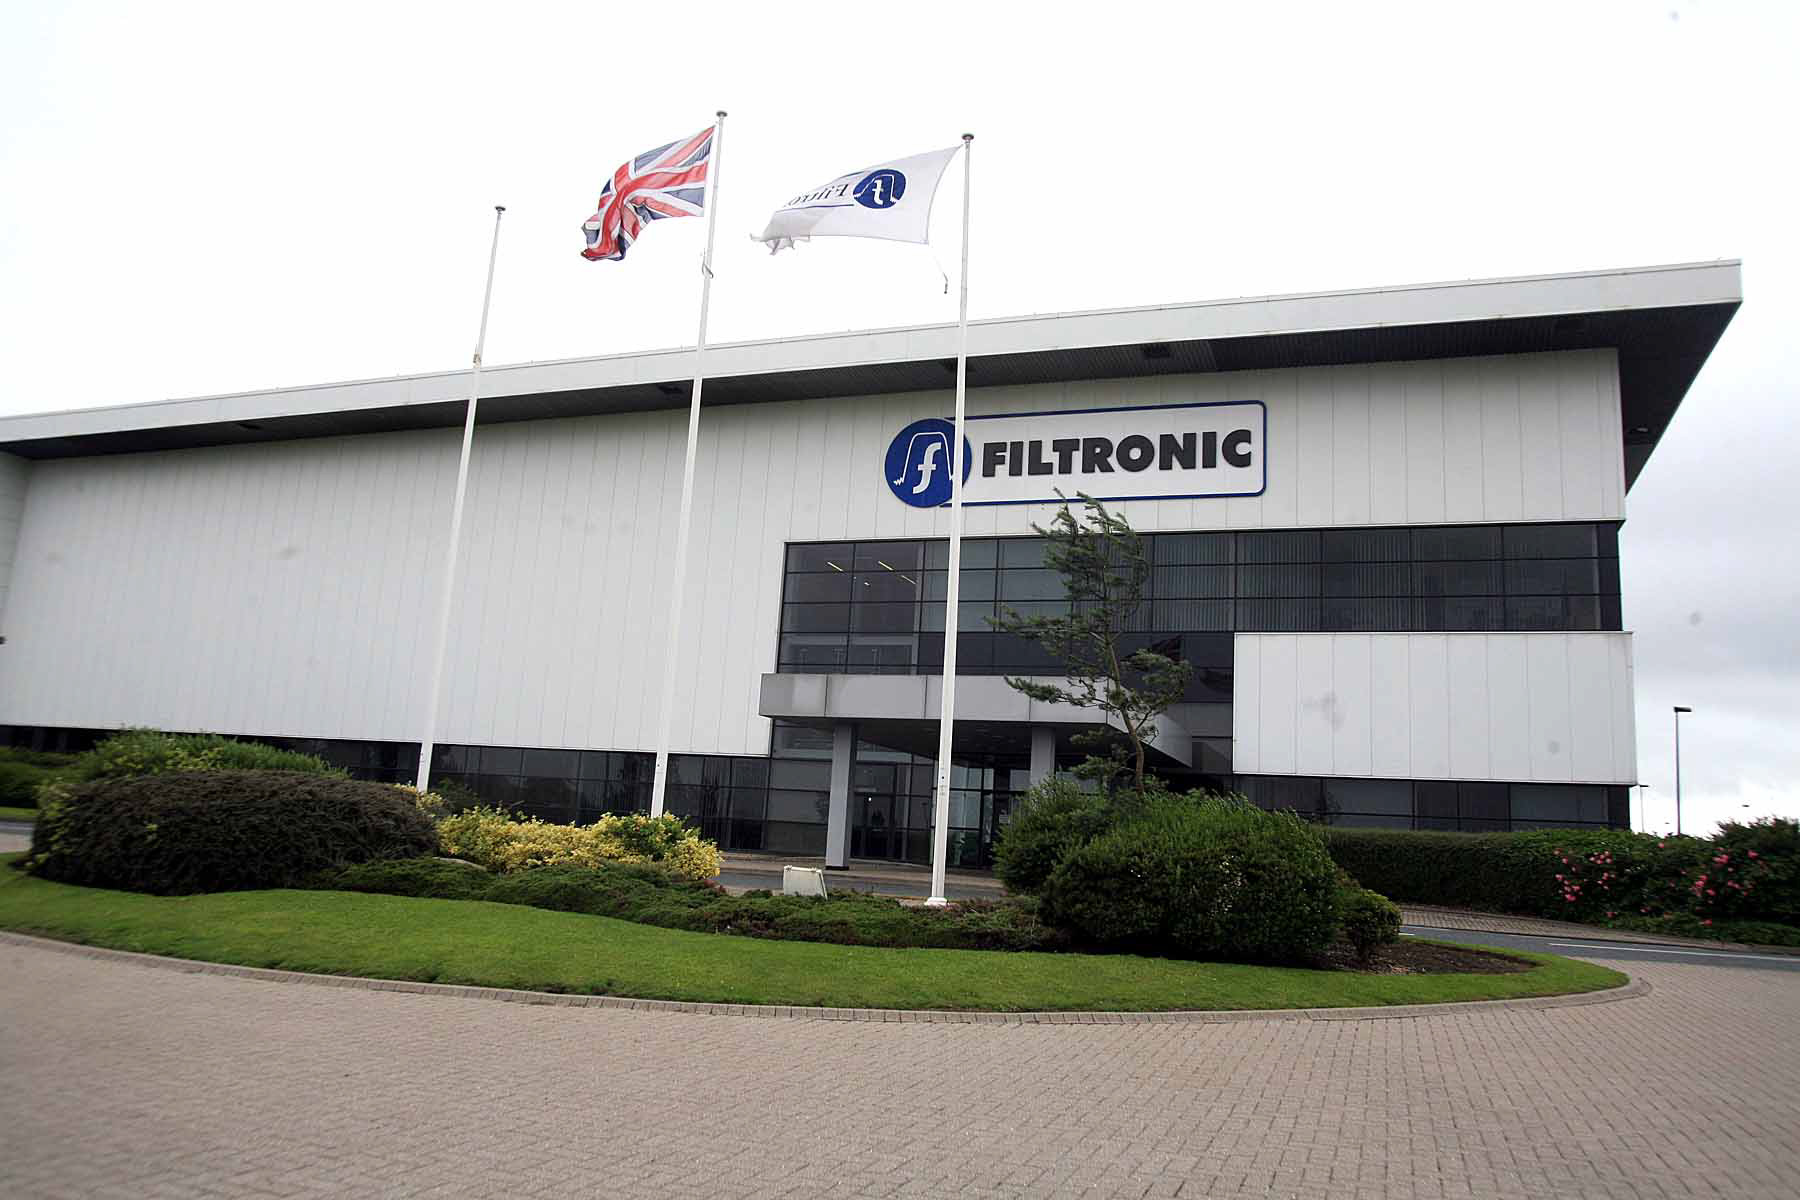 Filtronic's former factory in Newton Aycliffe, pictured in 2007 before RFMD took over the site